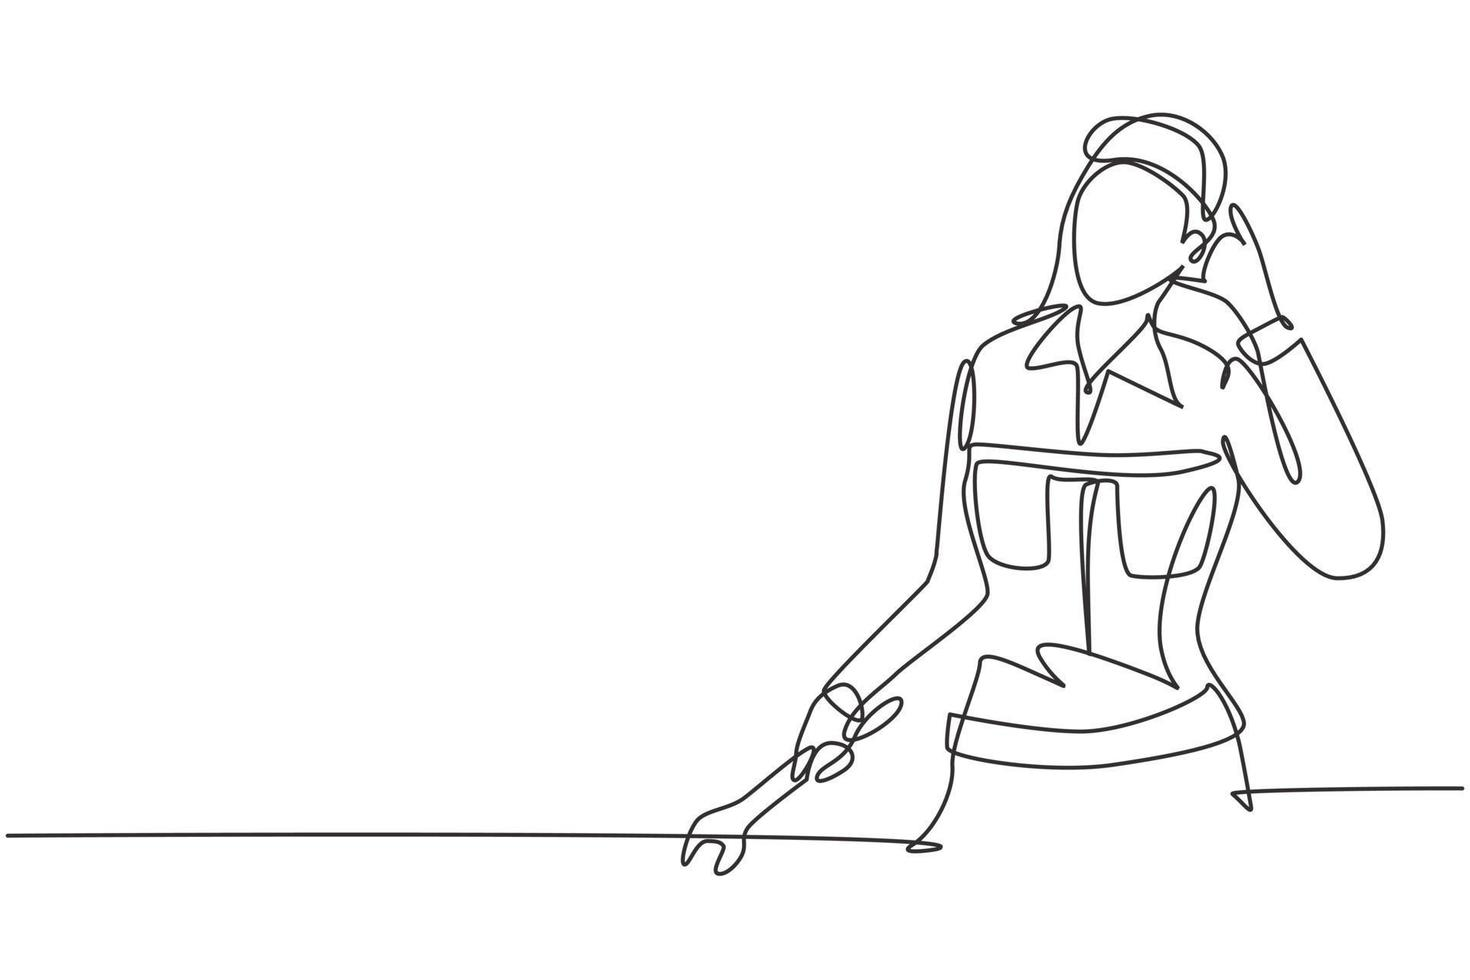 Continuous one line drawing female mechanic with call me gesture and holding wrench works to fix broken car engine in garage. Success business. Single line draw design vector graphic illustration